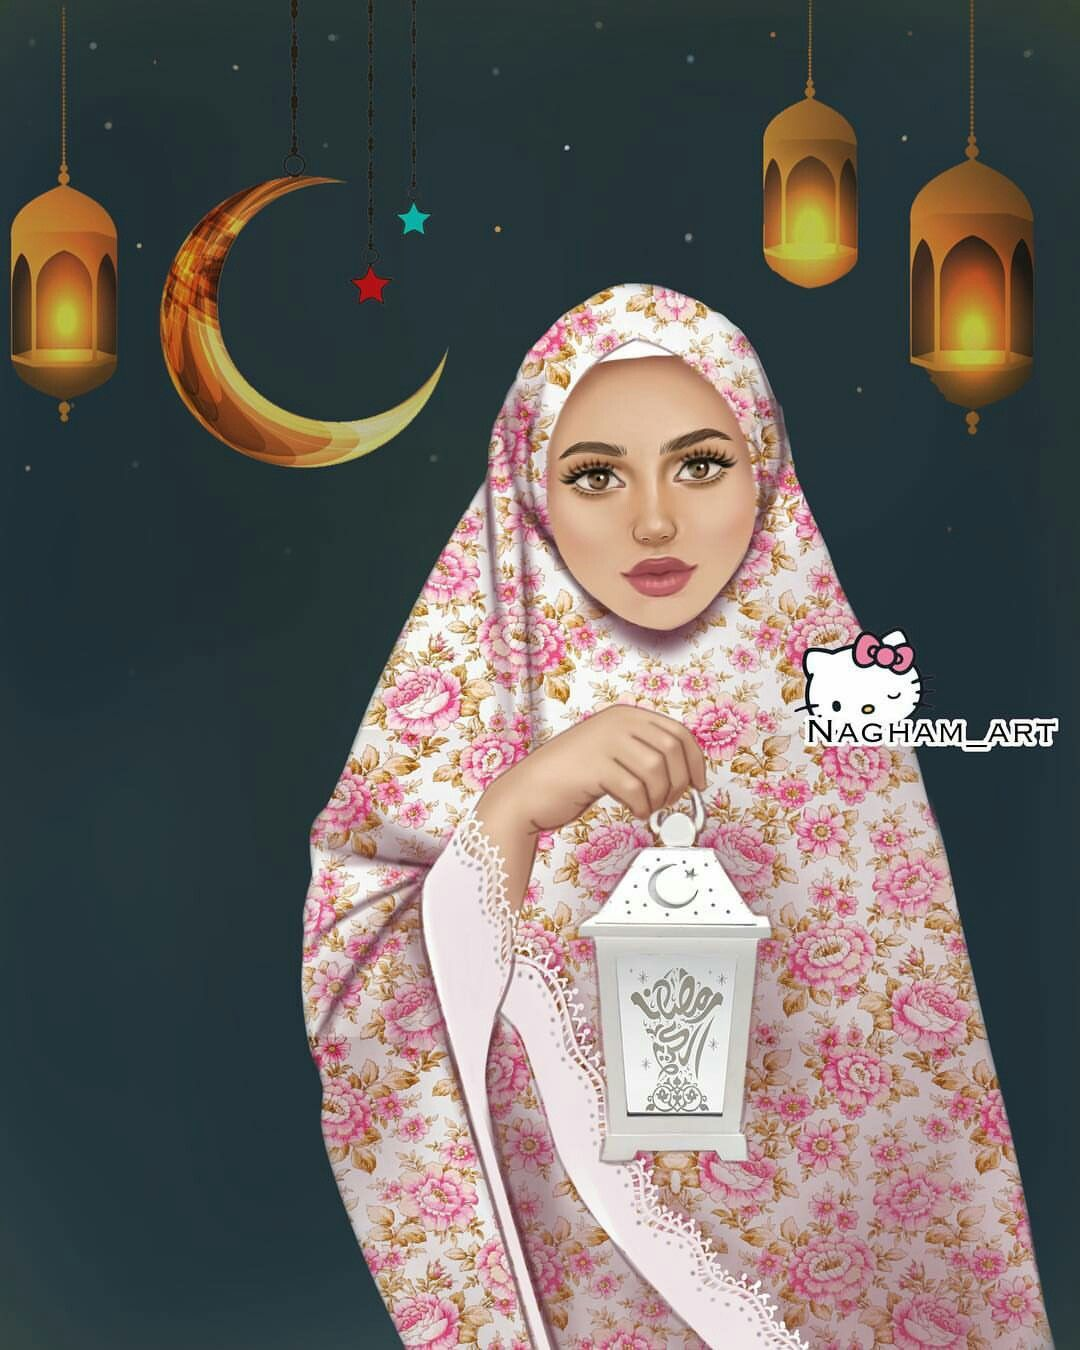 Pin By Iana On Ramadan And Eid Purple Aesthetic Background Girly Art Girly Pictures